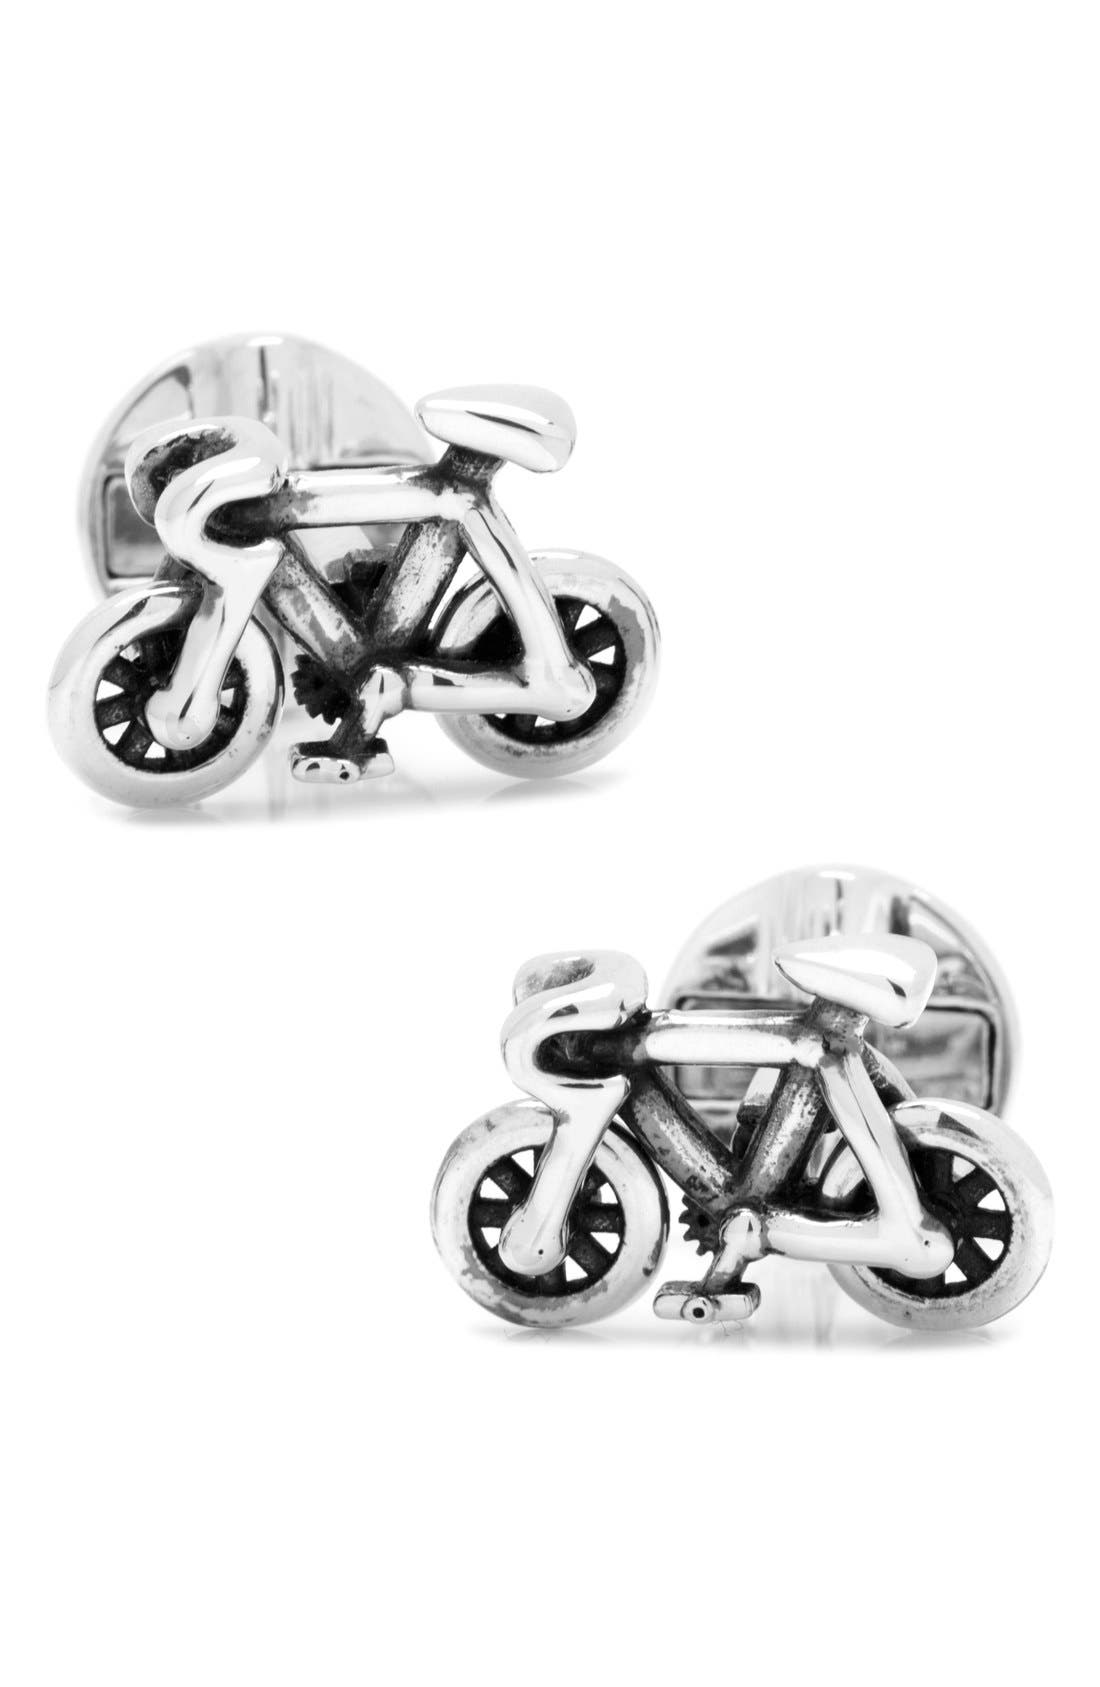 OX AND BULL TRADING CO. Bicycle Cuff Links